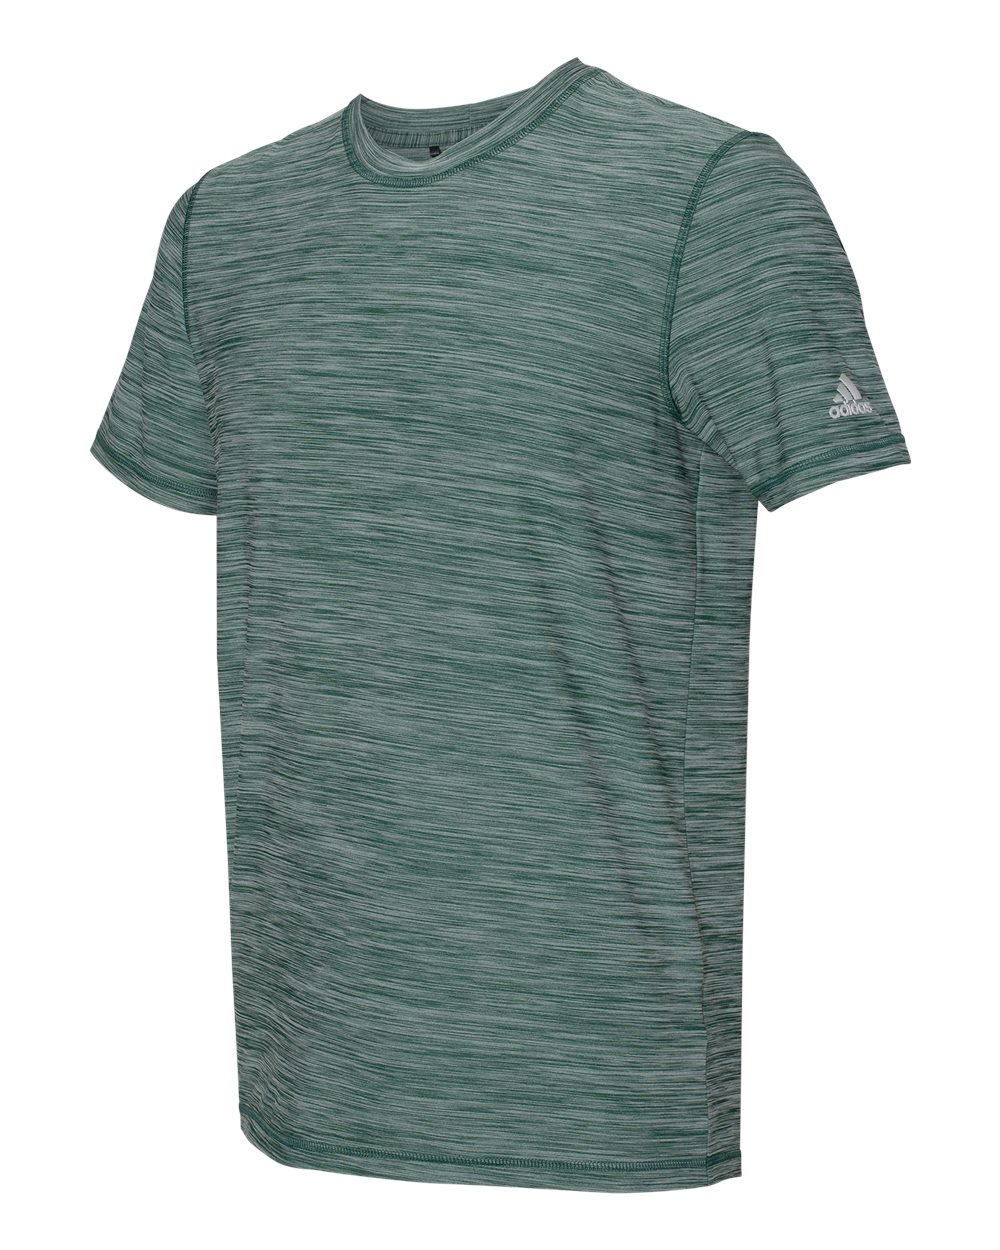 click to view Collegiate Green Heather